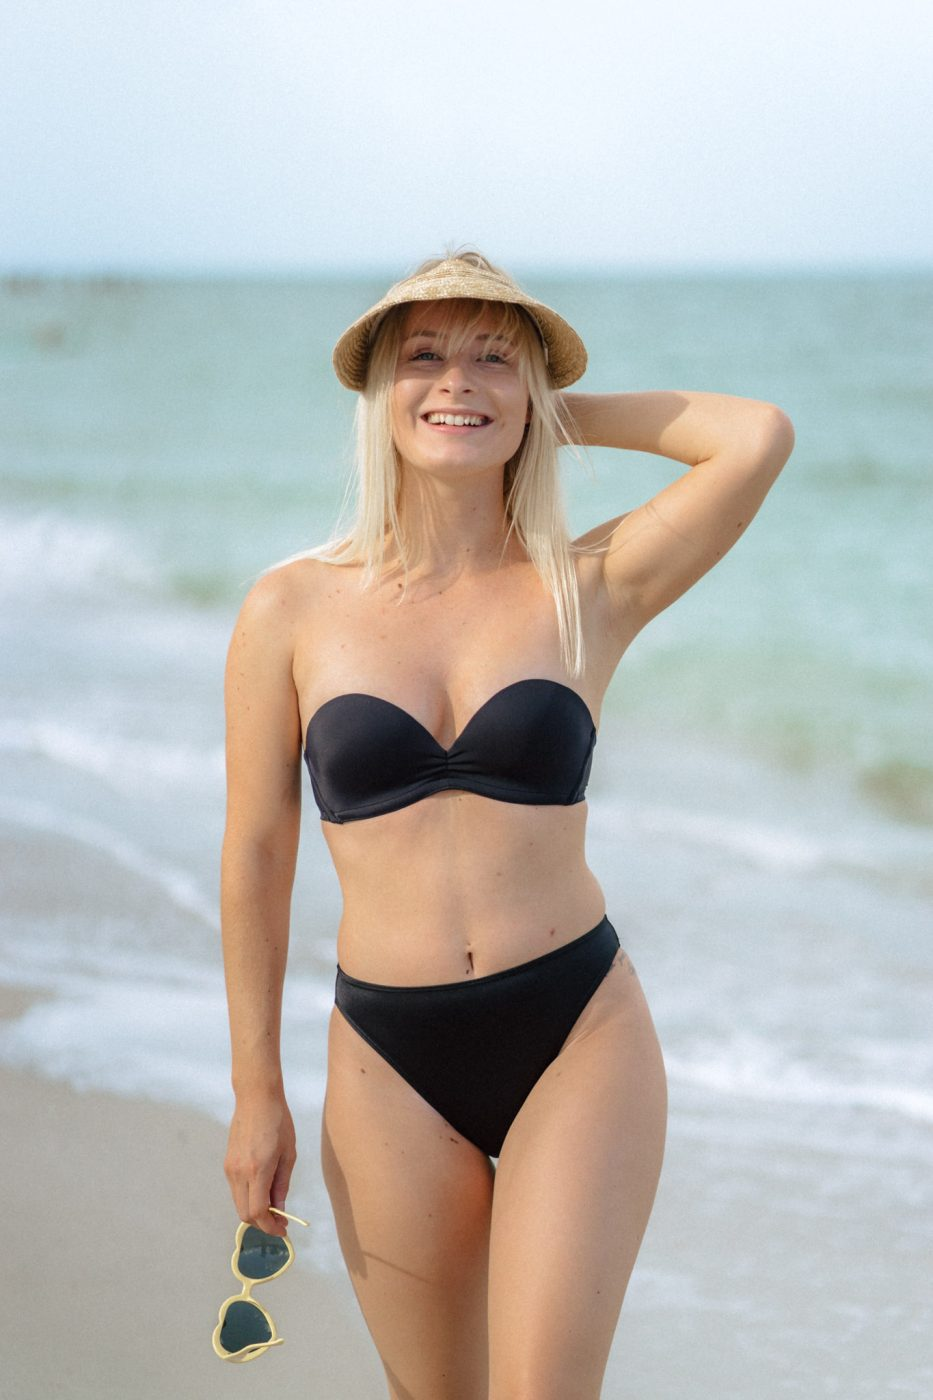 Upbra push up swimsuit in black